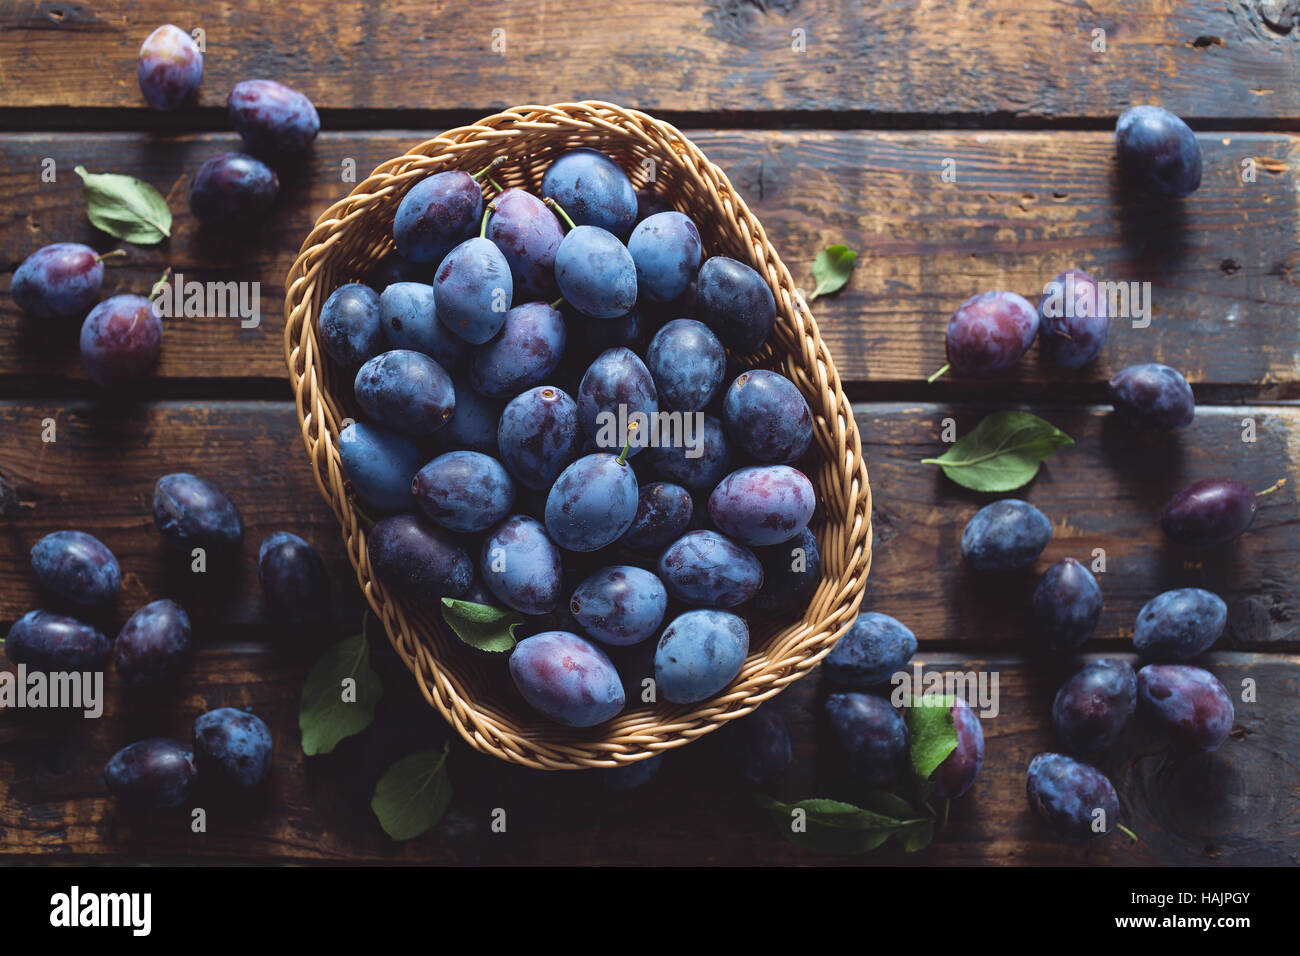 Freshly picked organic plums on a wooden table - Stock Image